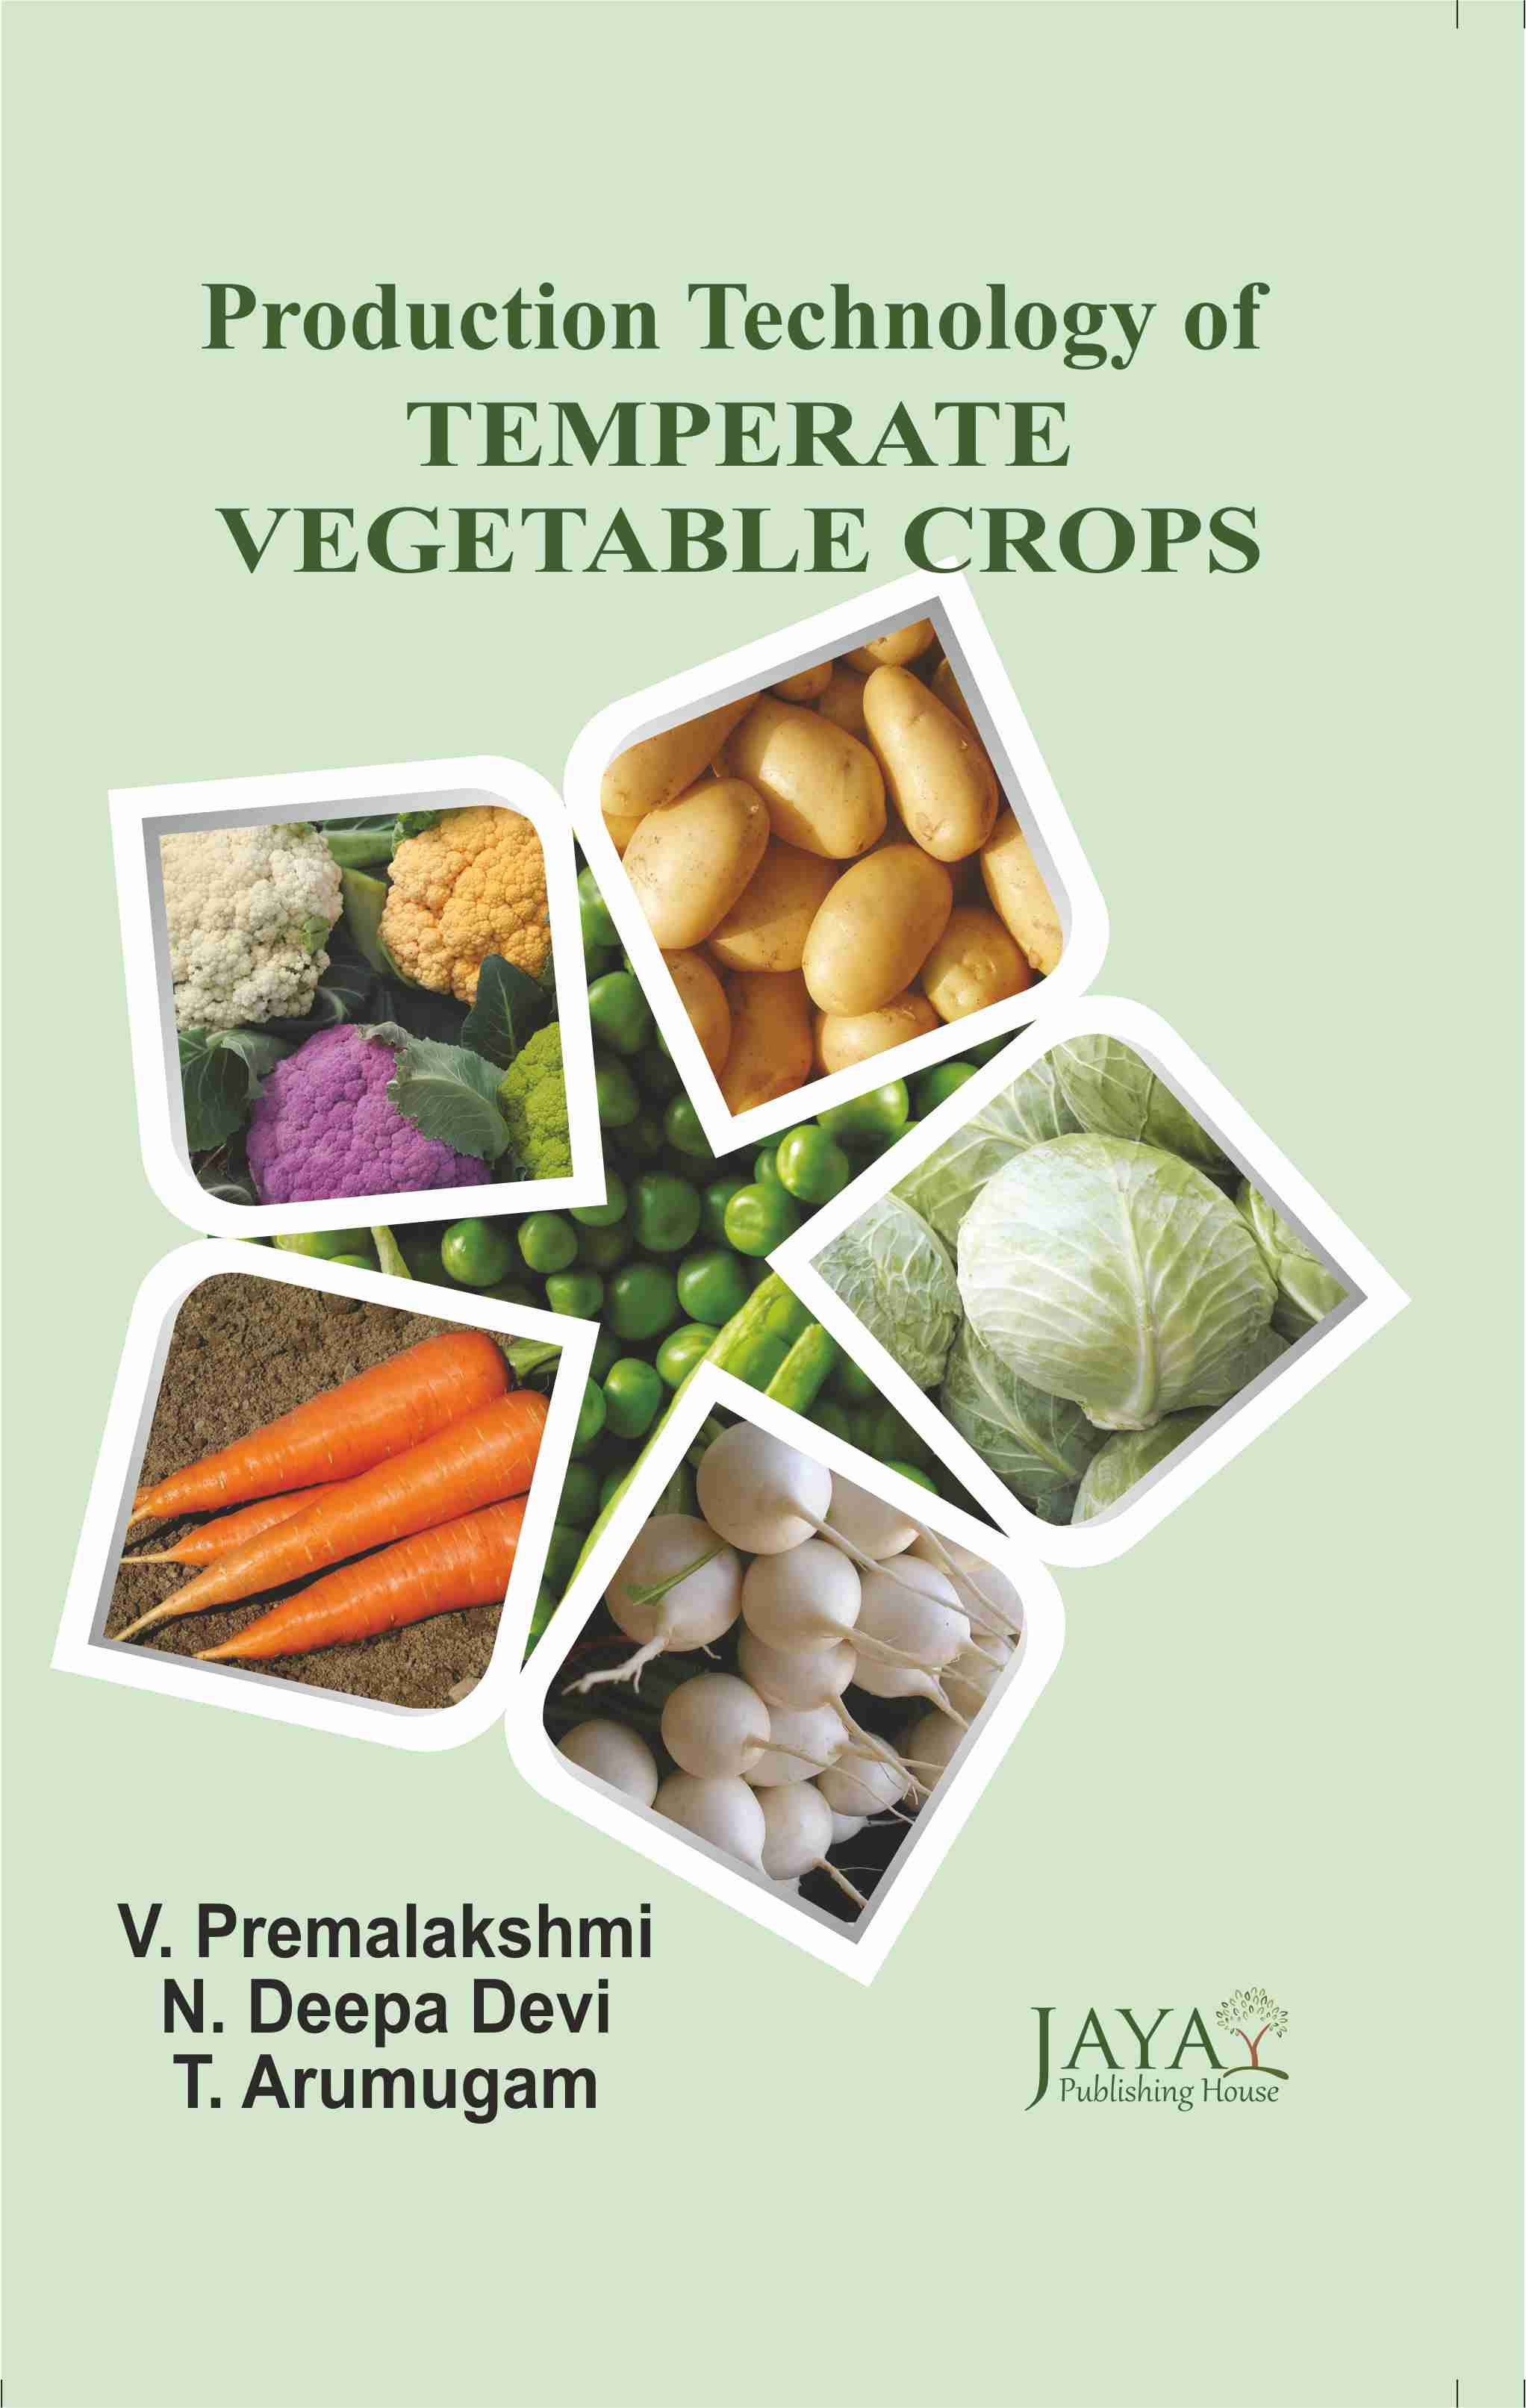 Production Technology of Temperate Vegetable Crops